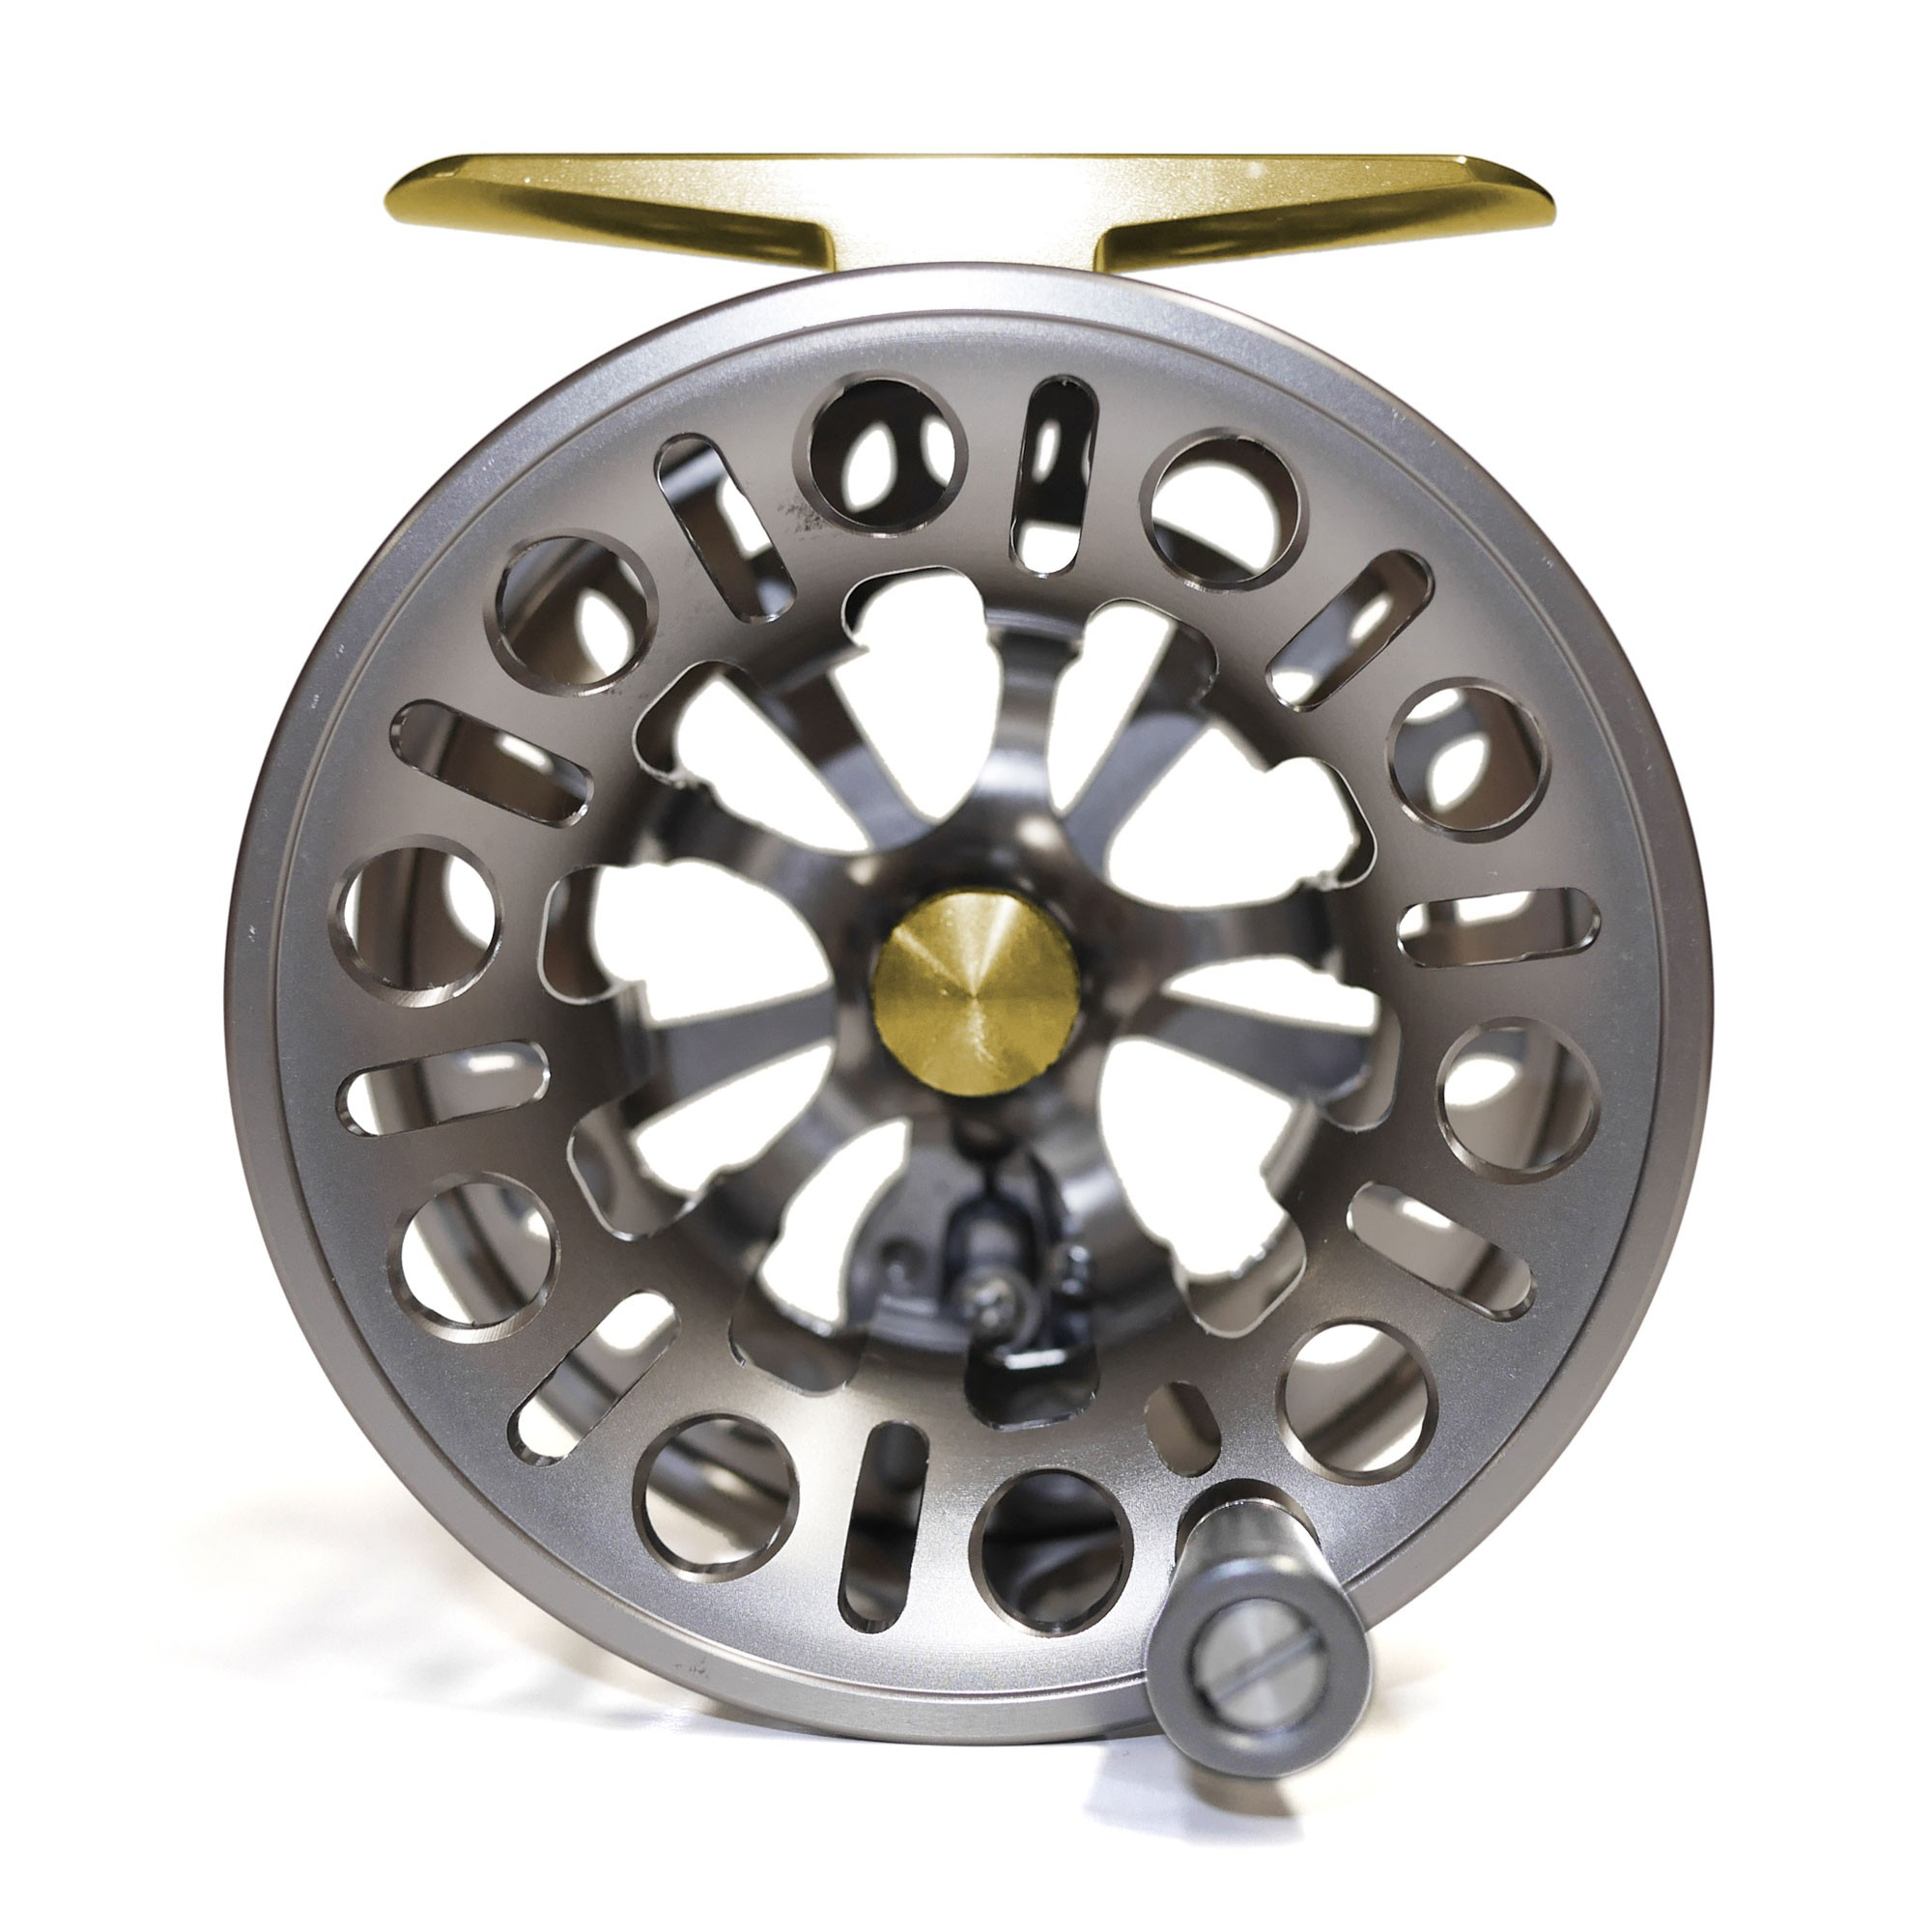 How to choose best fly fishing reel